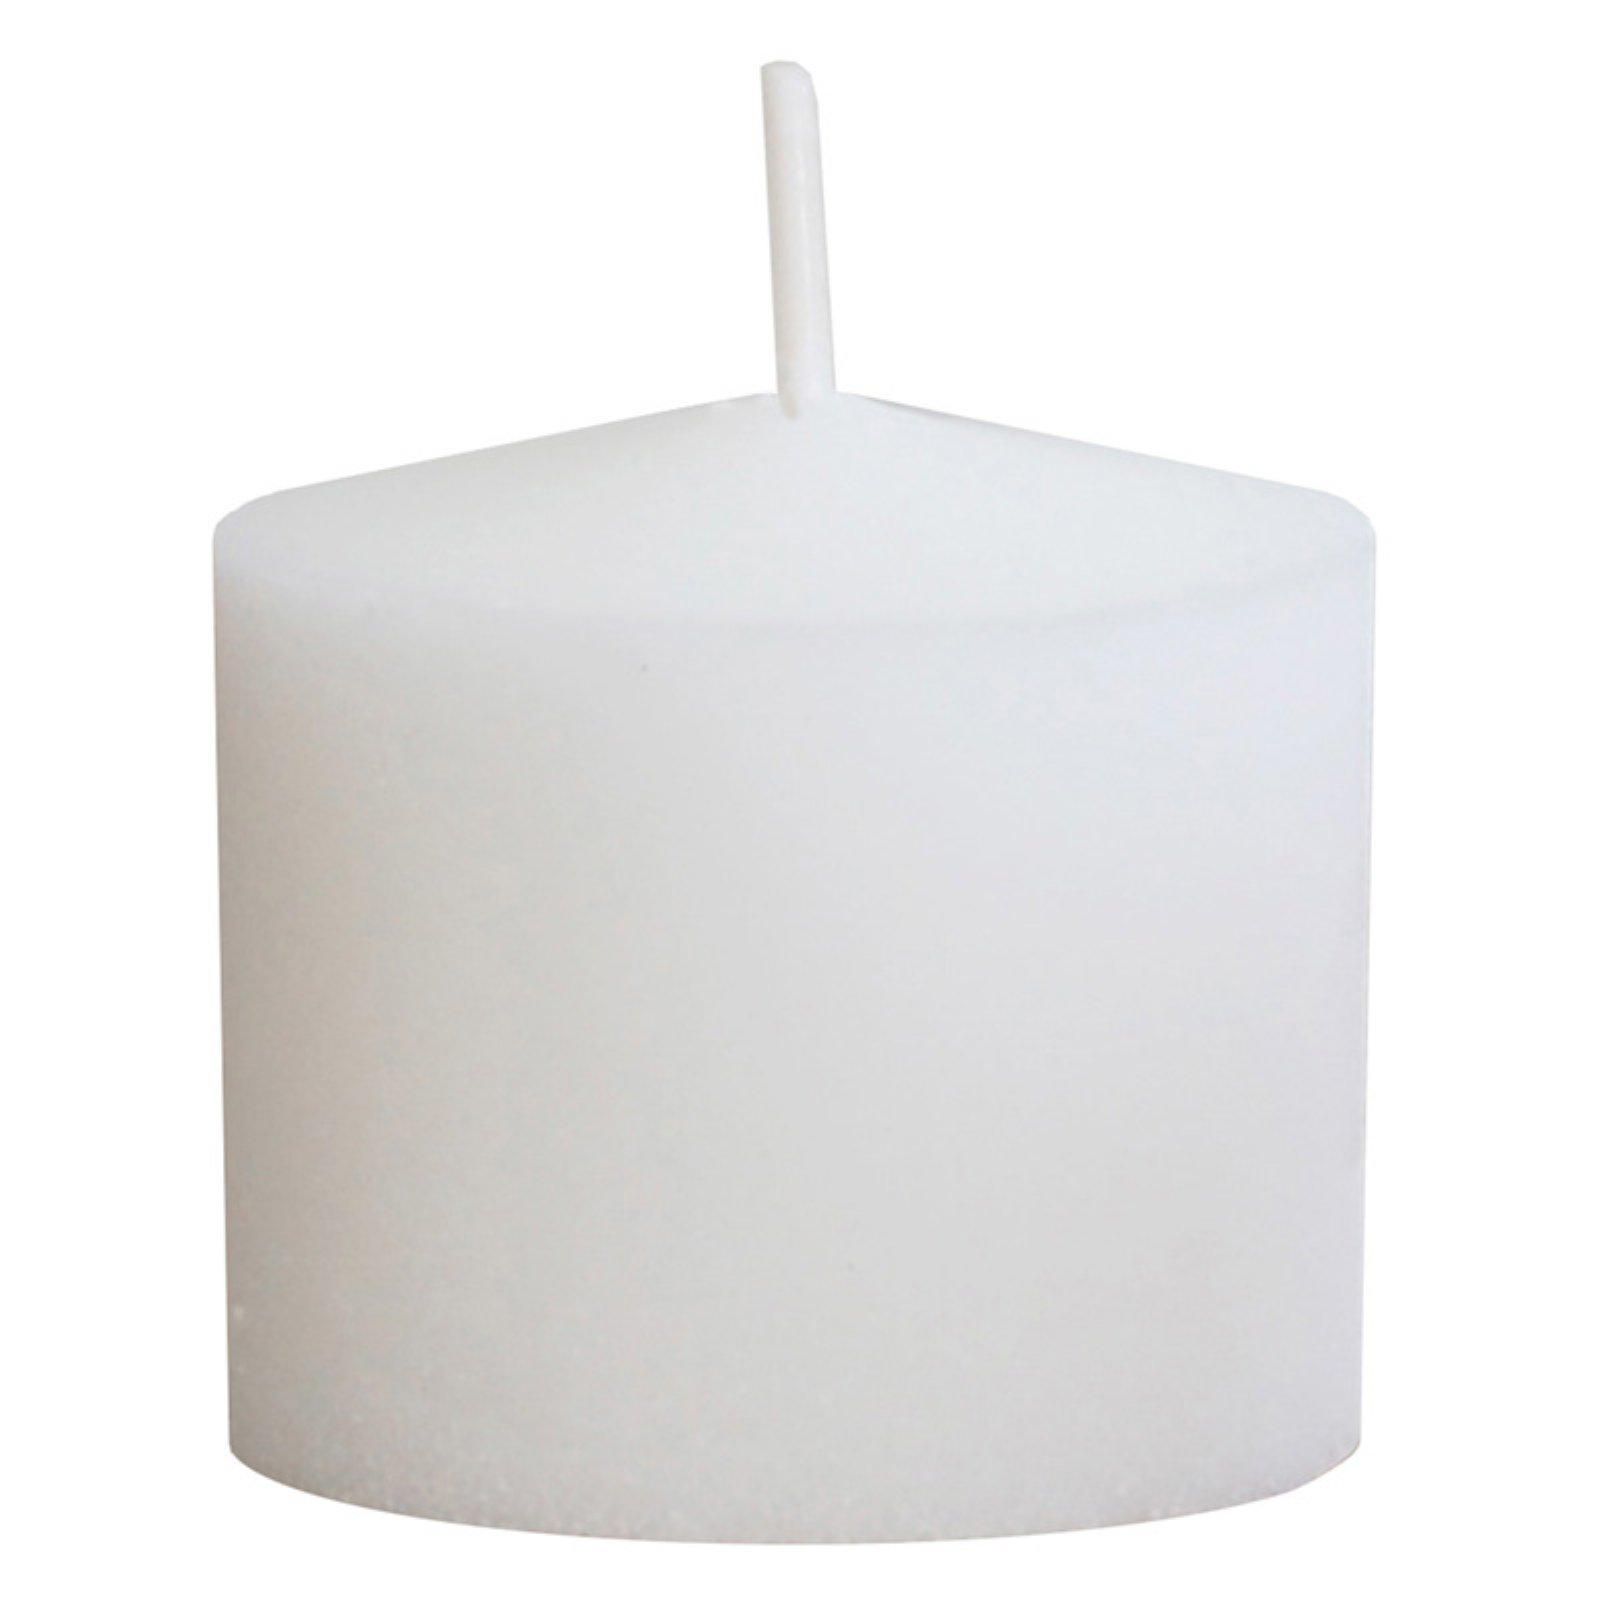 LumaBase Luminarias 10-Hour Votive Candles, 72-Count by JH Specialties